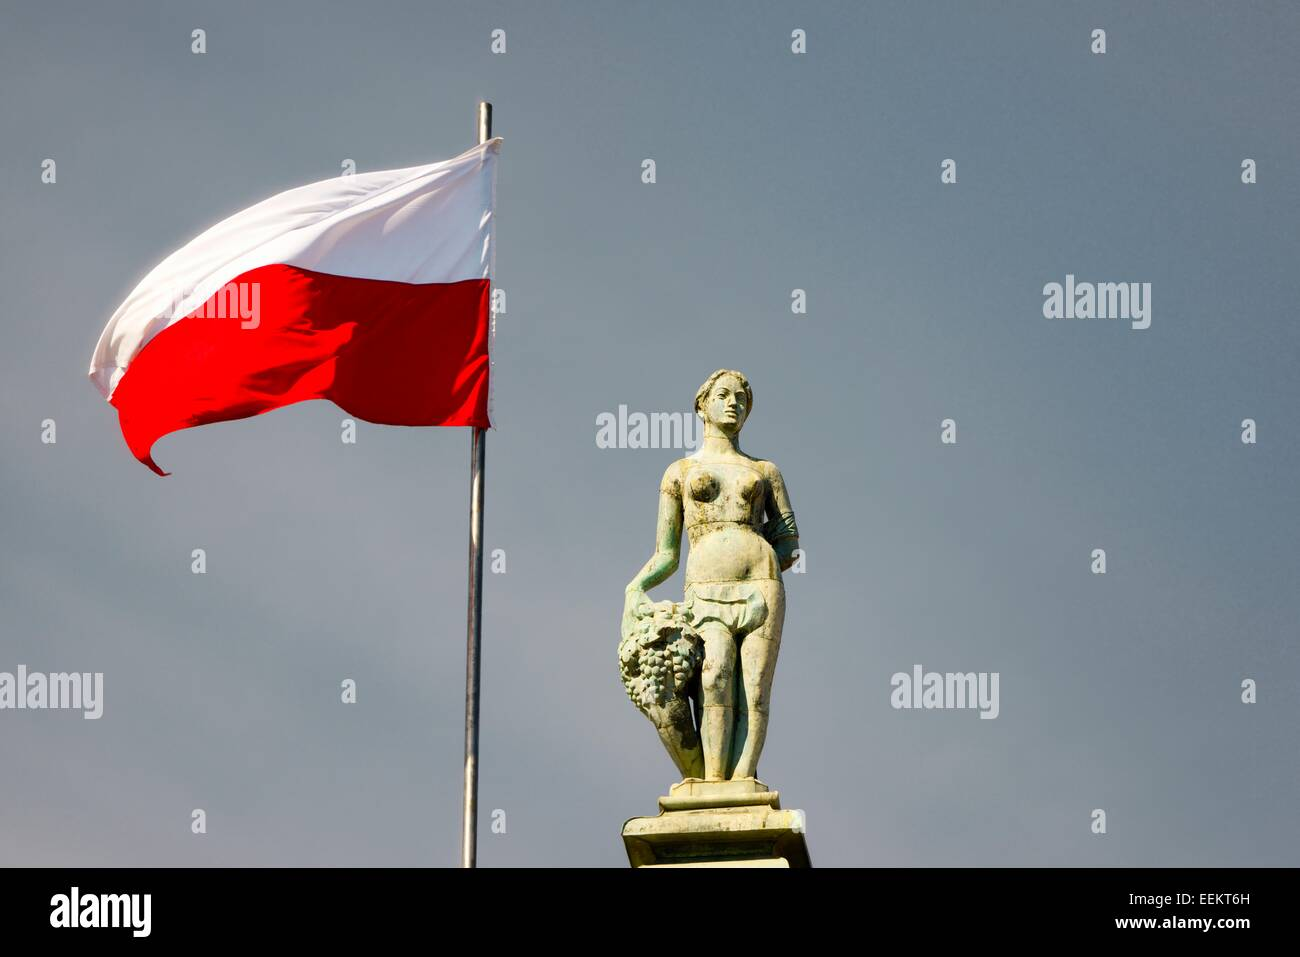 Gdansk Poland. Polish flag and statue on top of The Court of Artus in the Old Town main street of Dlugi Targ - Stock Image